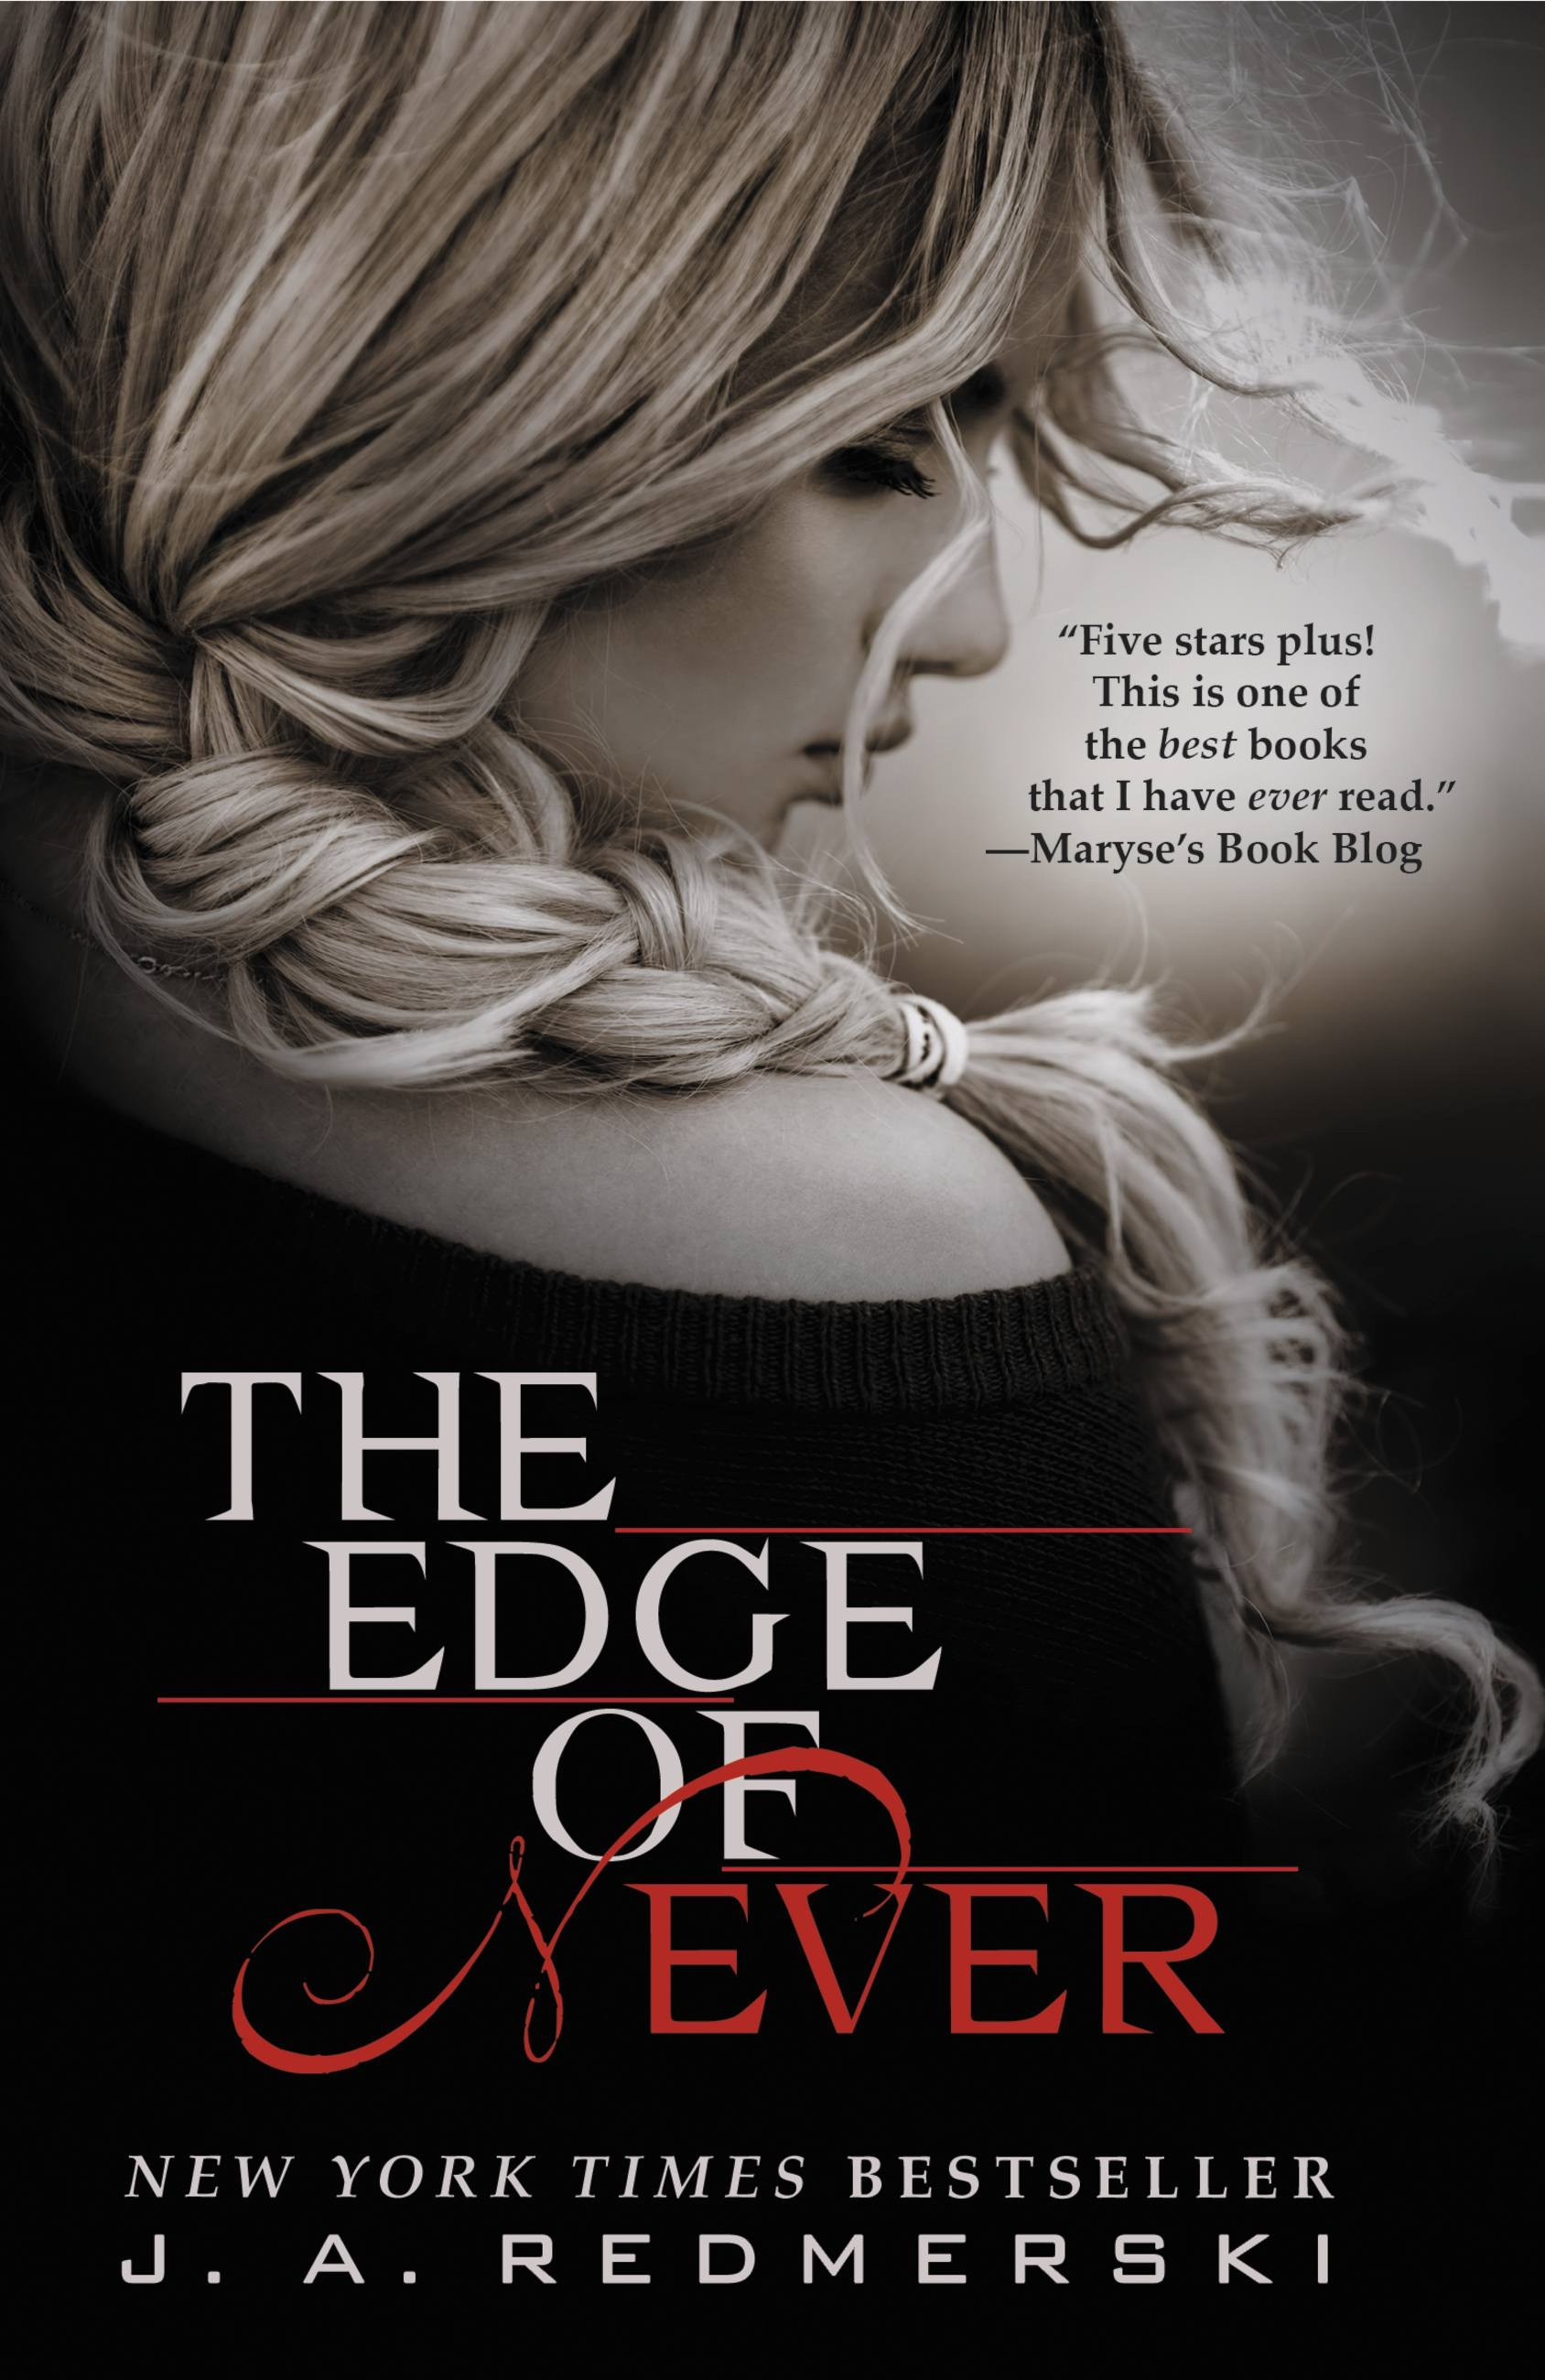 The Edge of Never by J. A. Redmerski   Hachette Book Group